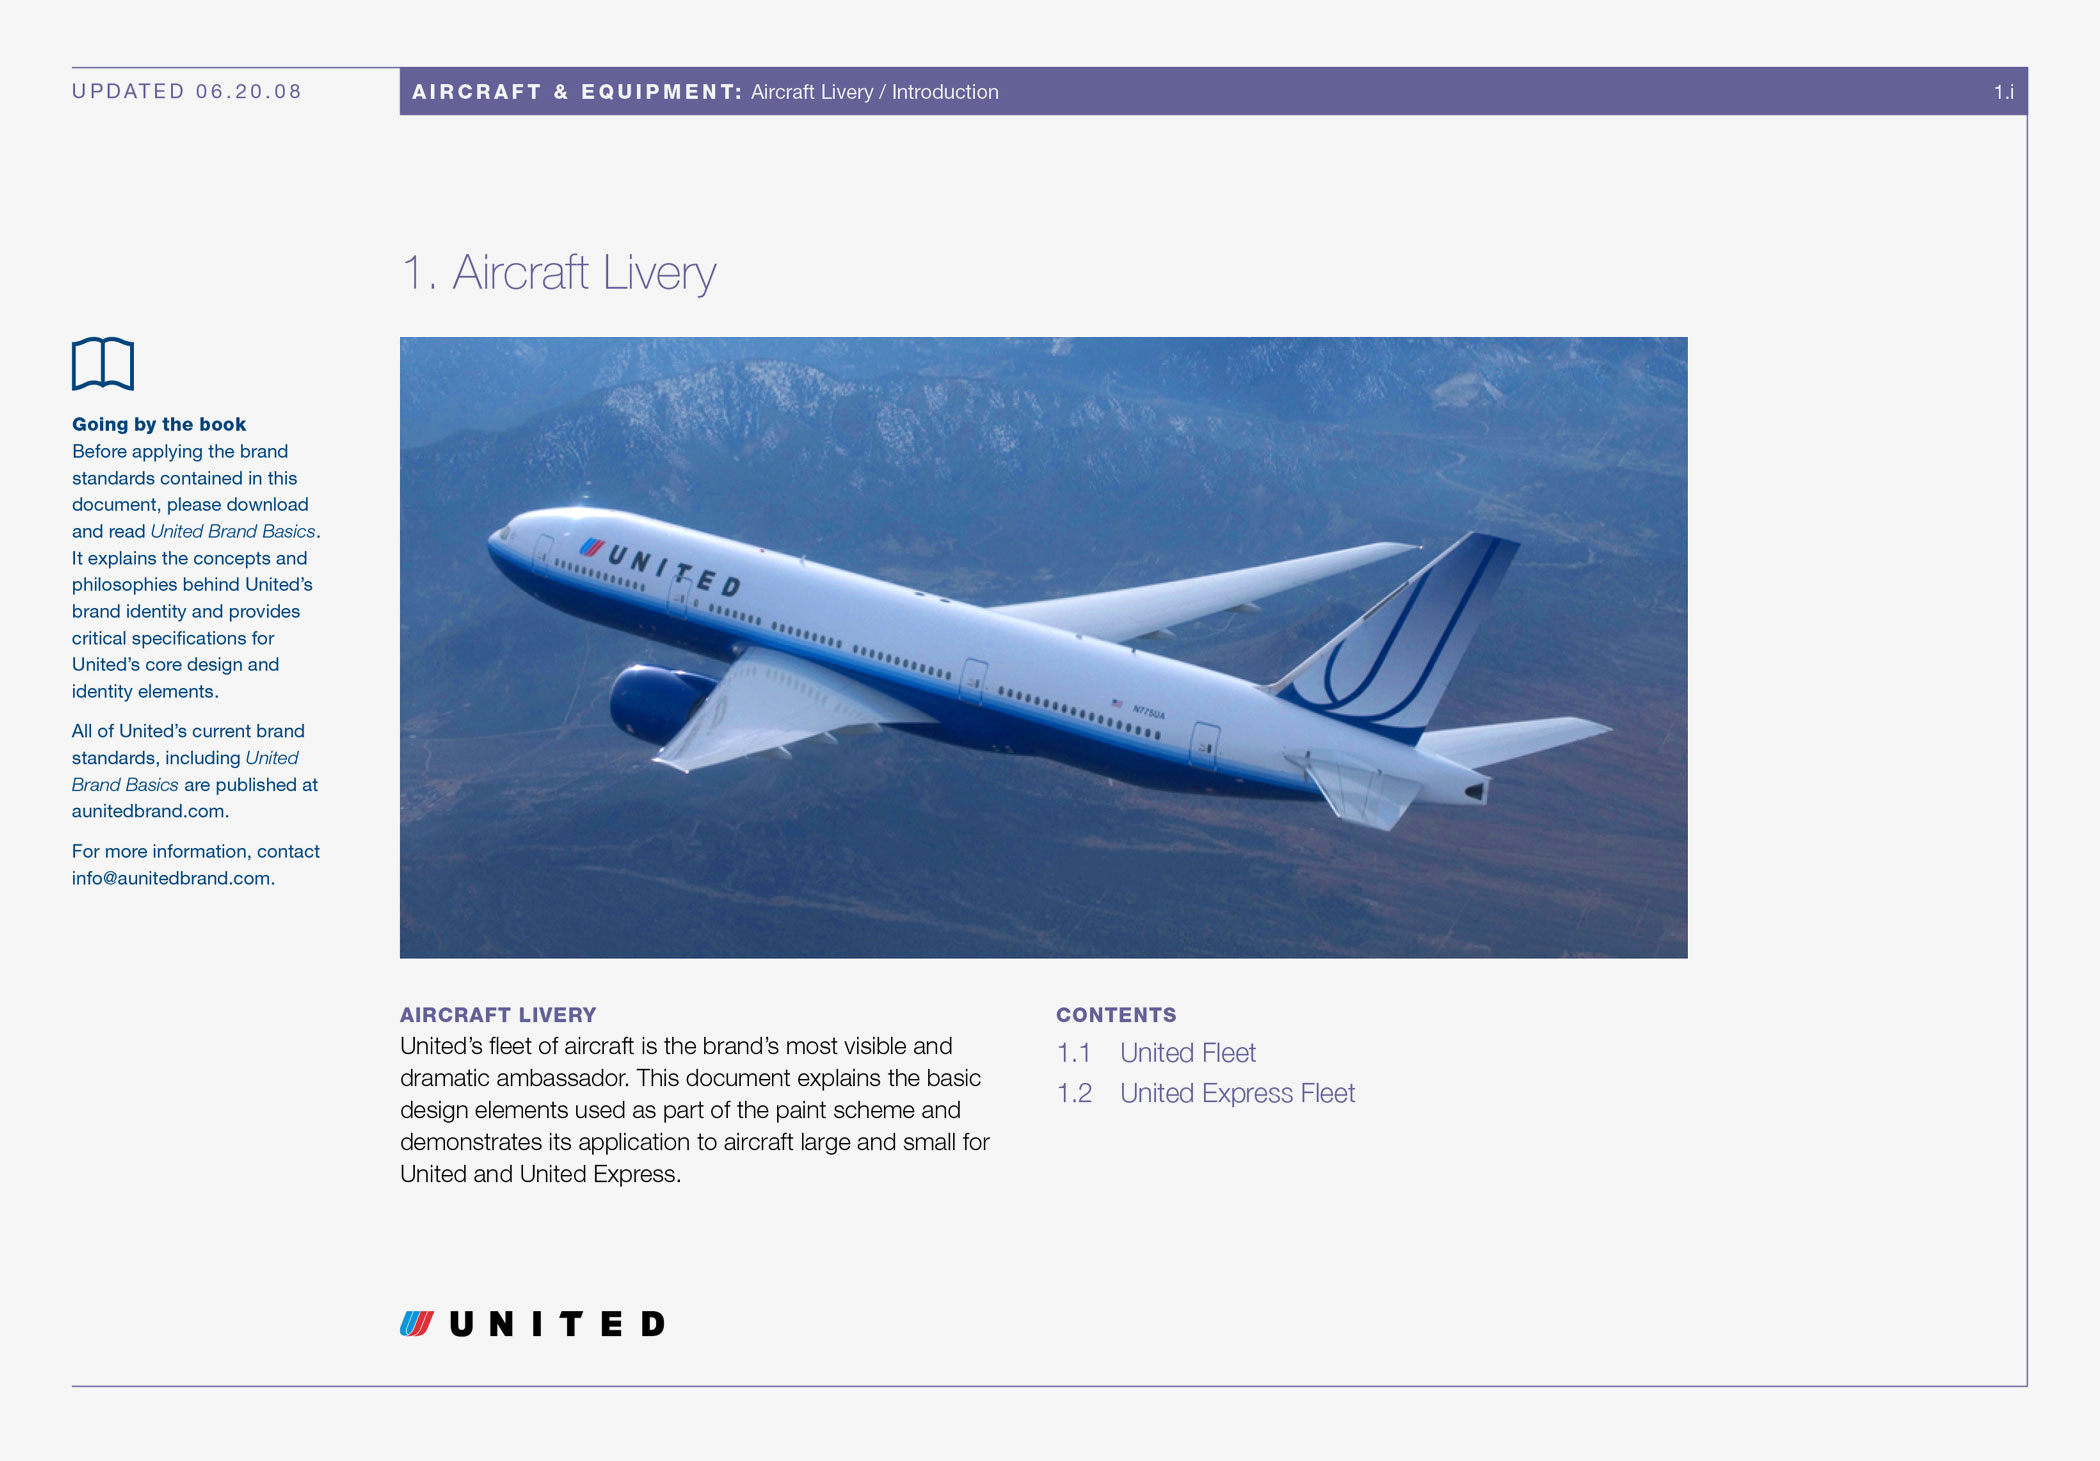 """Cover of the """"Aircraft Livery"""" section of the Aircraft and Equipment volume of United Airlines brand standards."""